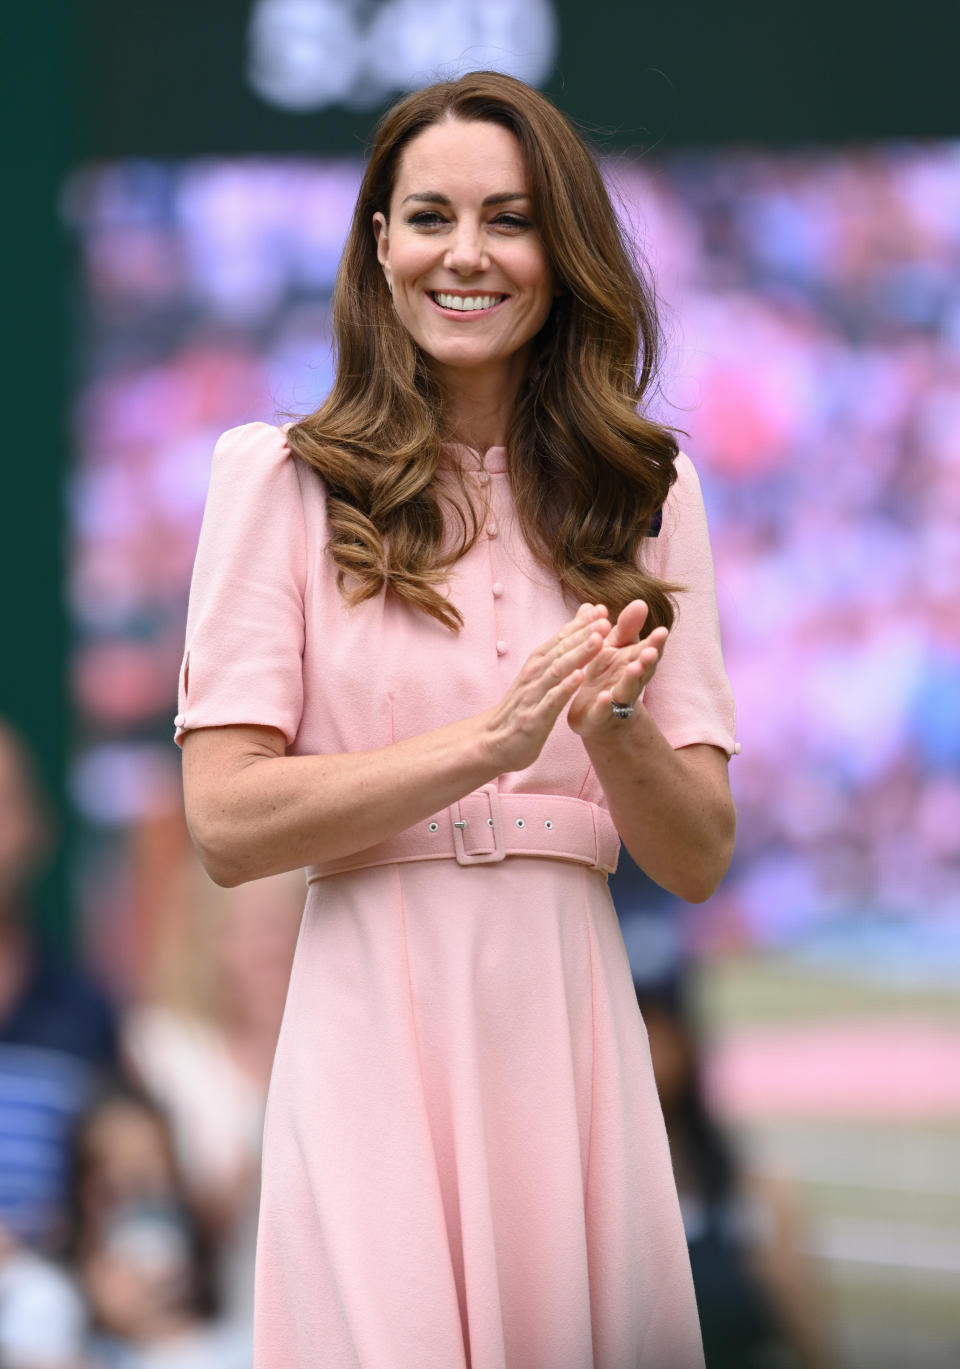 Catherine, Duchess of Cambridge wearing a light pink dress at day 13 of the Wimbledon Tennis Championships at All England Lawn Tennis and Croquet Club on July 11, 2021 in London, England. (Photo by Karwai Tang/WireImage)